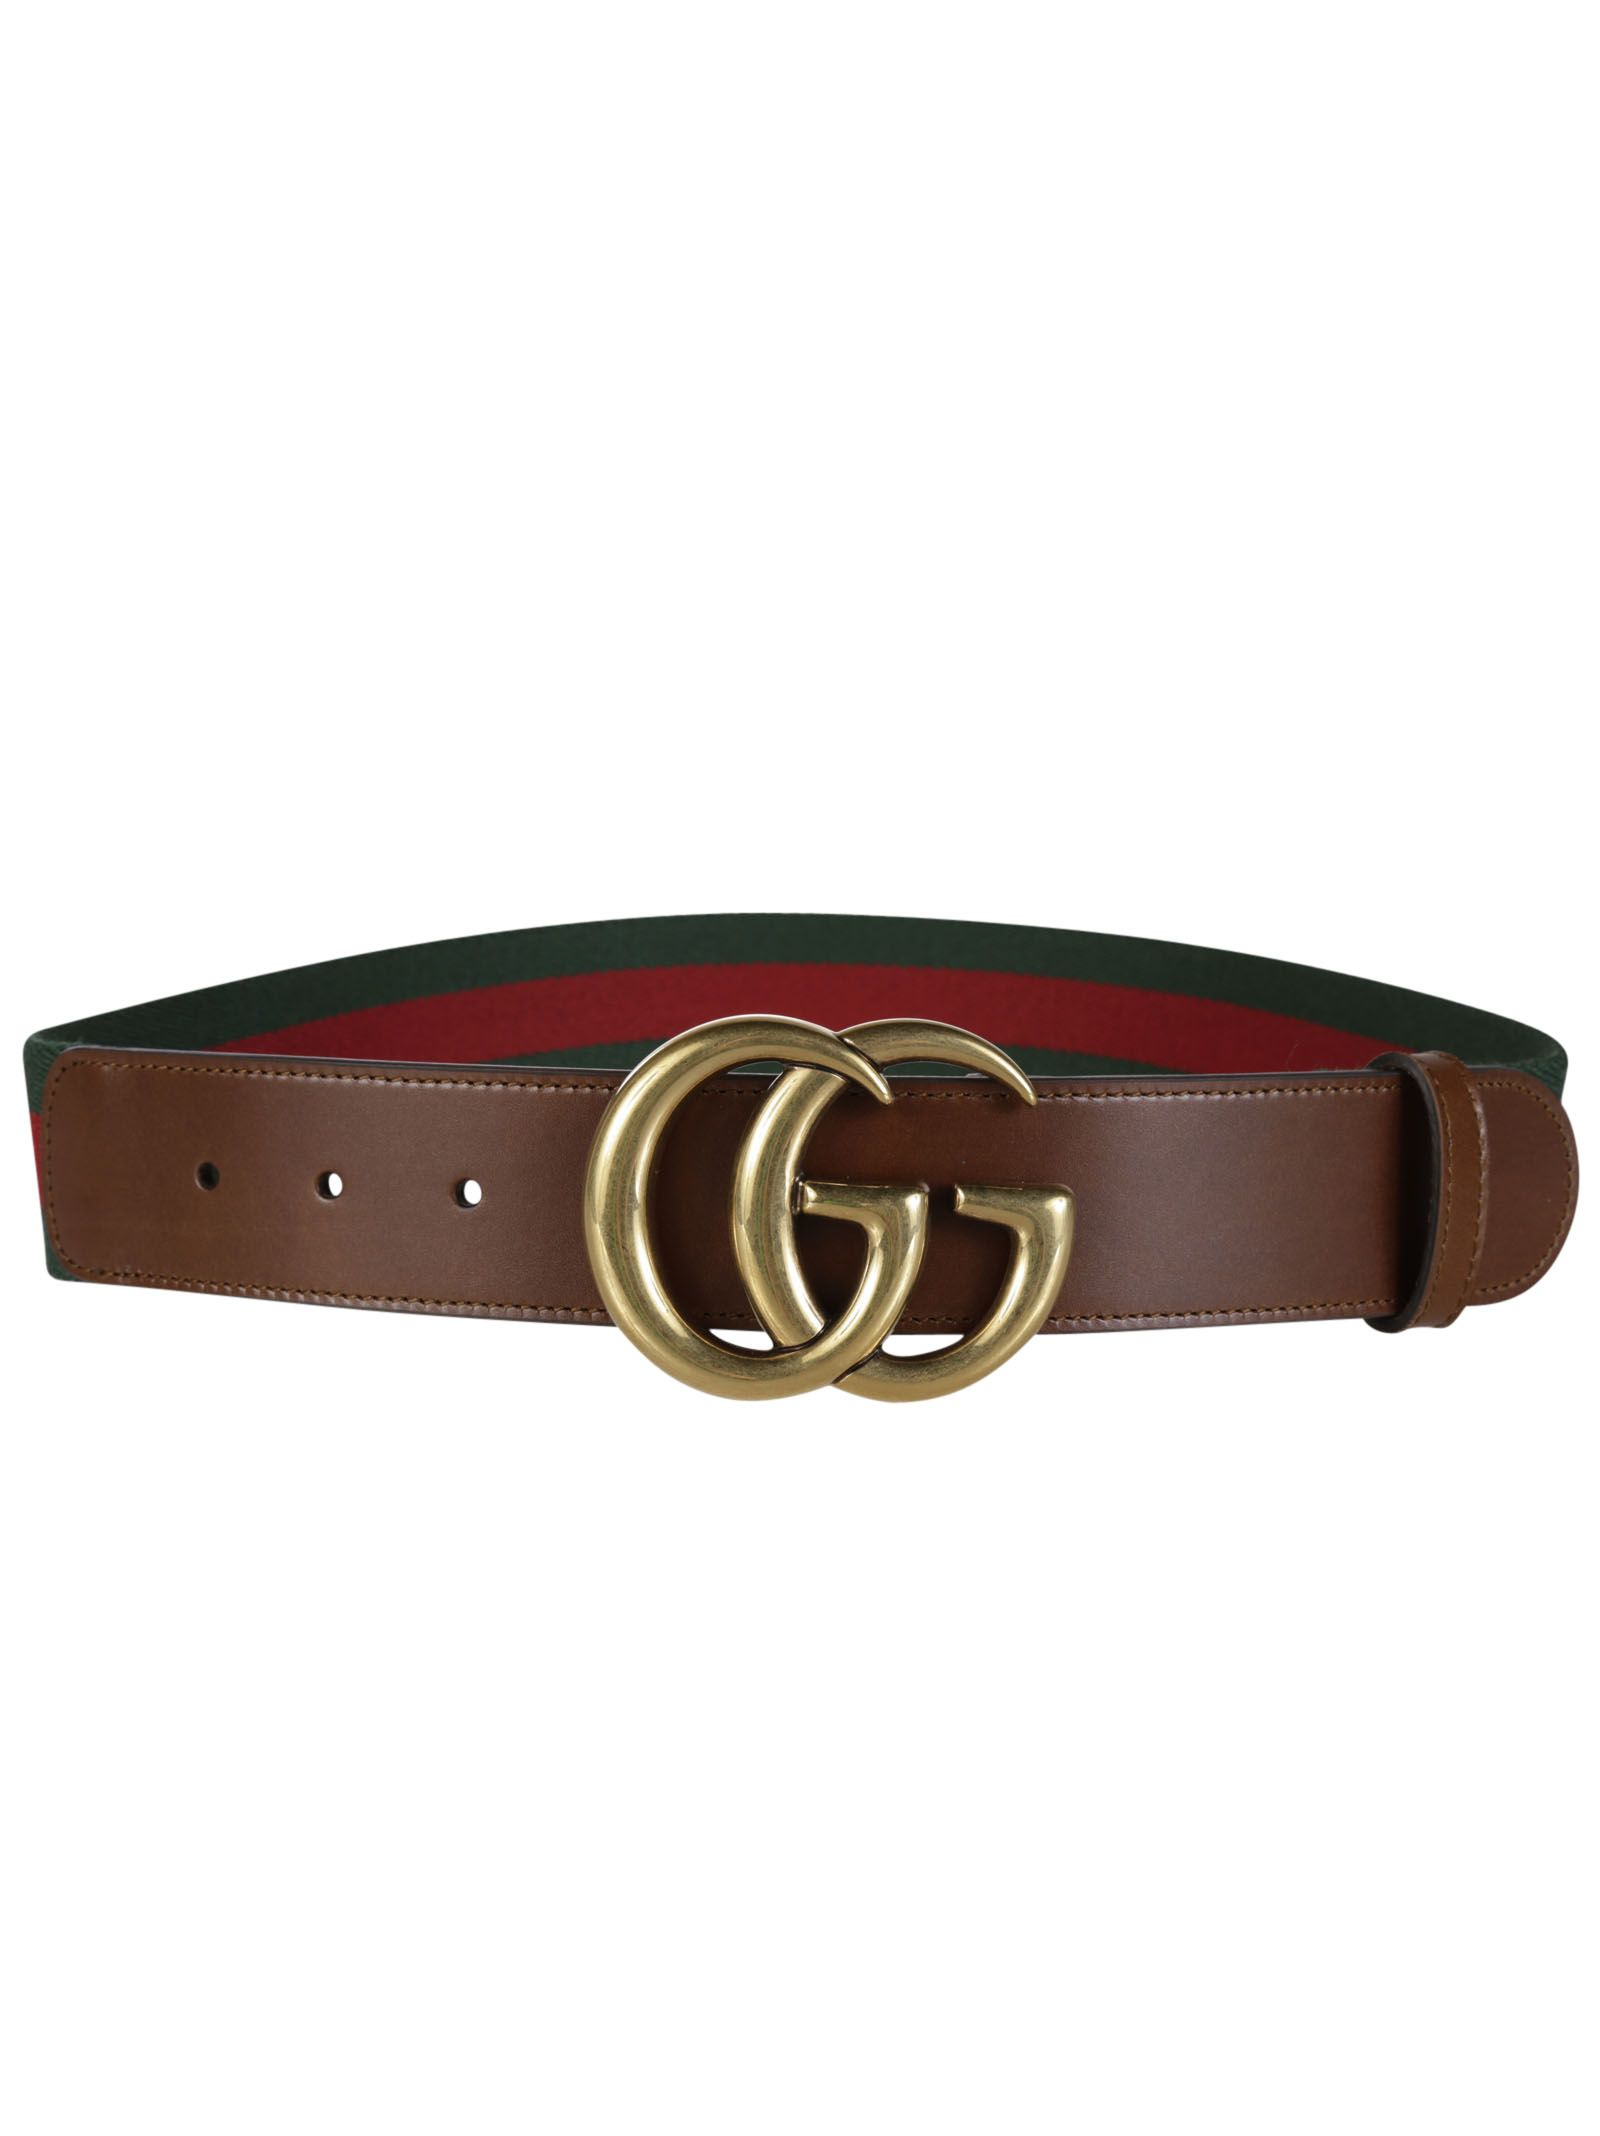 gucci 409416. gucci web belt with double g buckle 409416